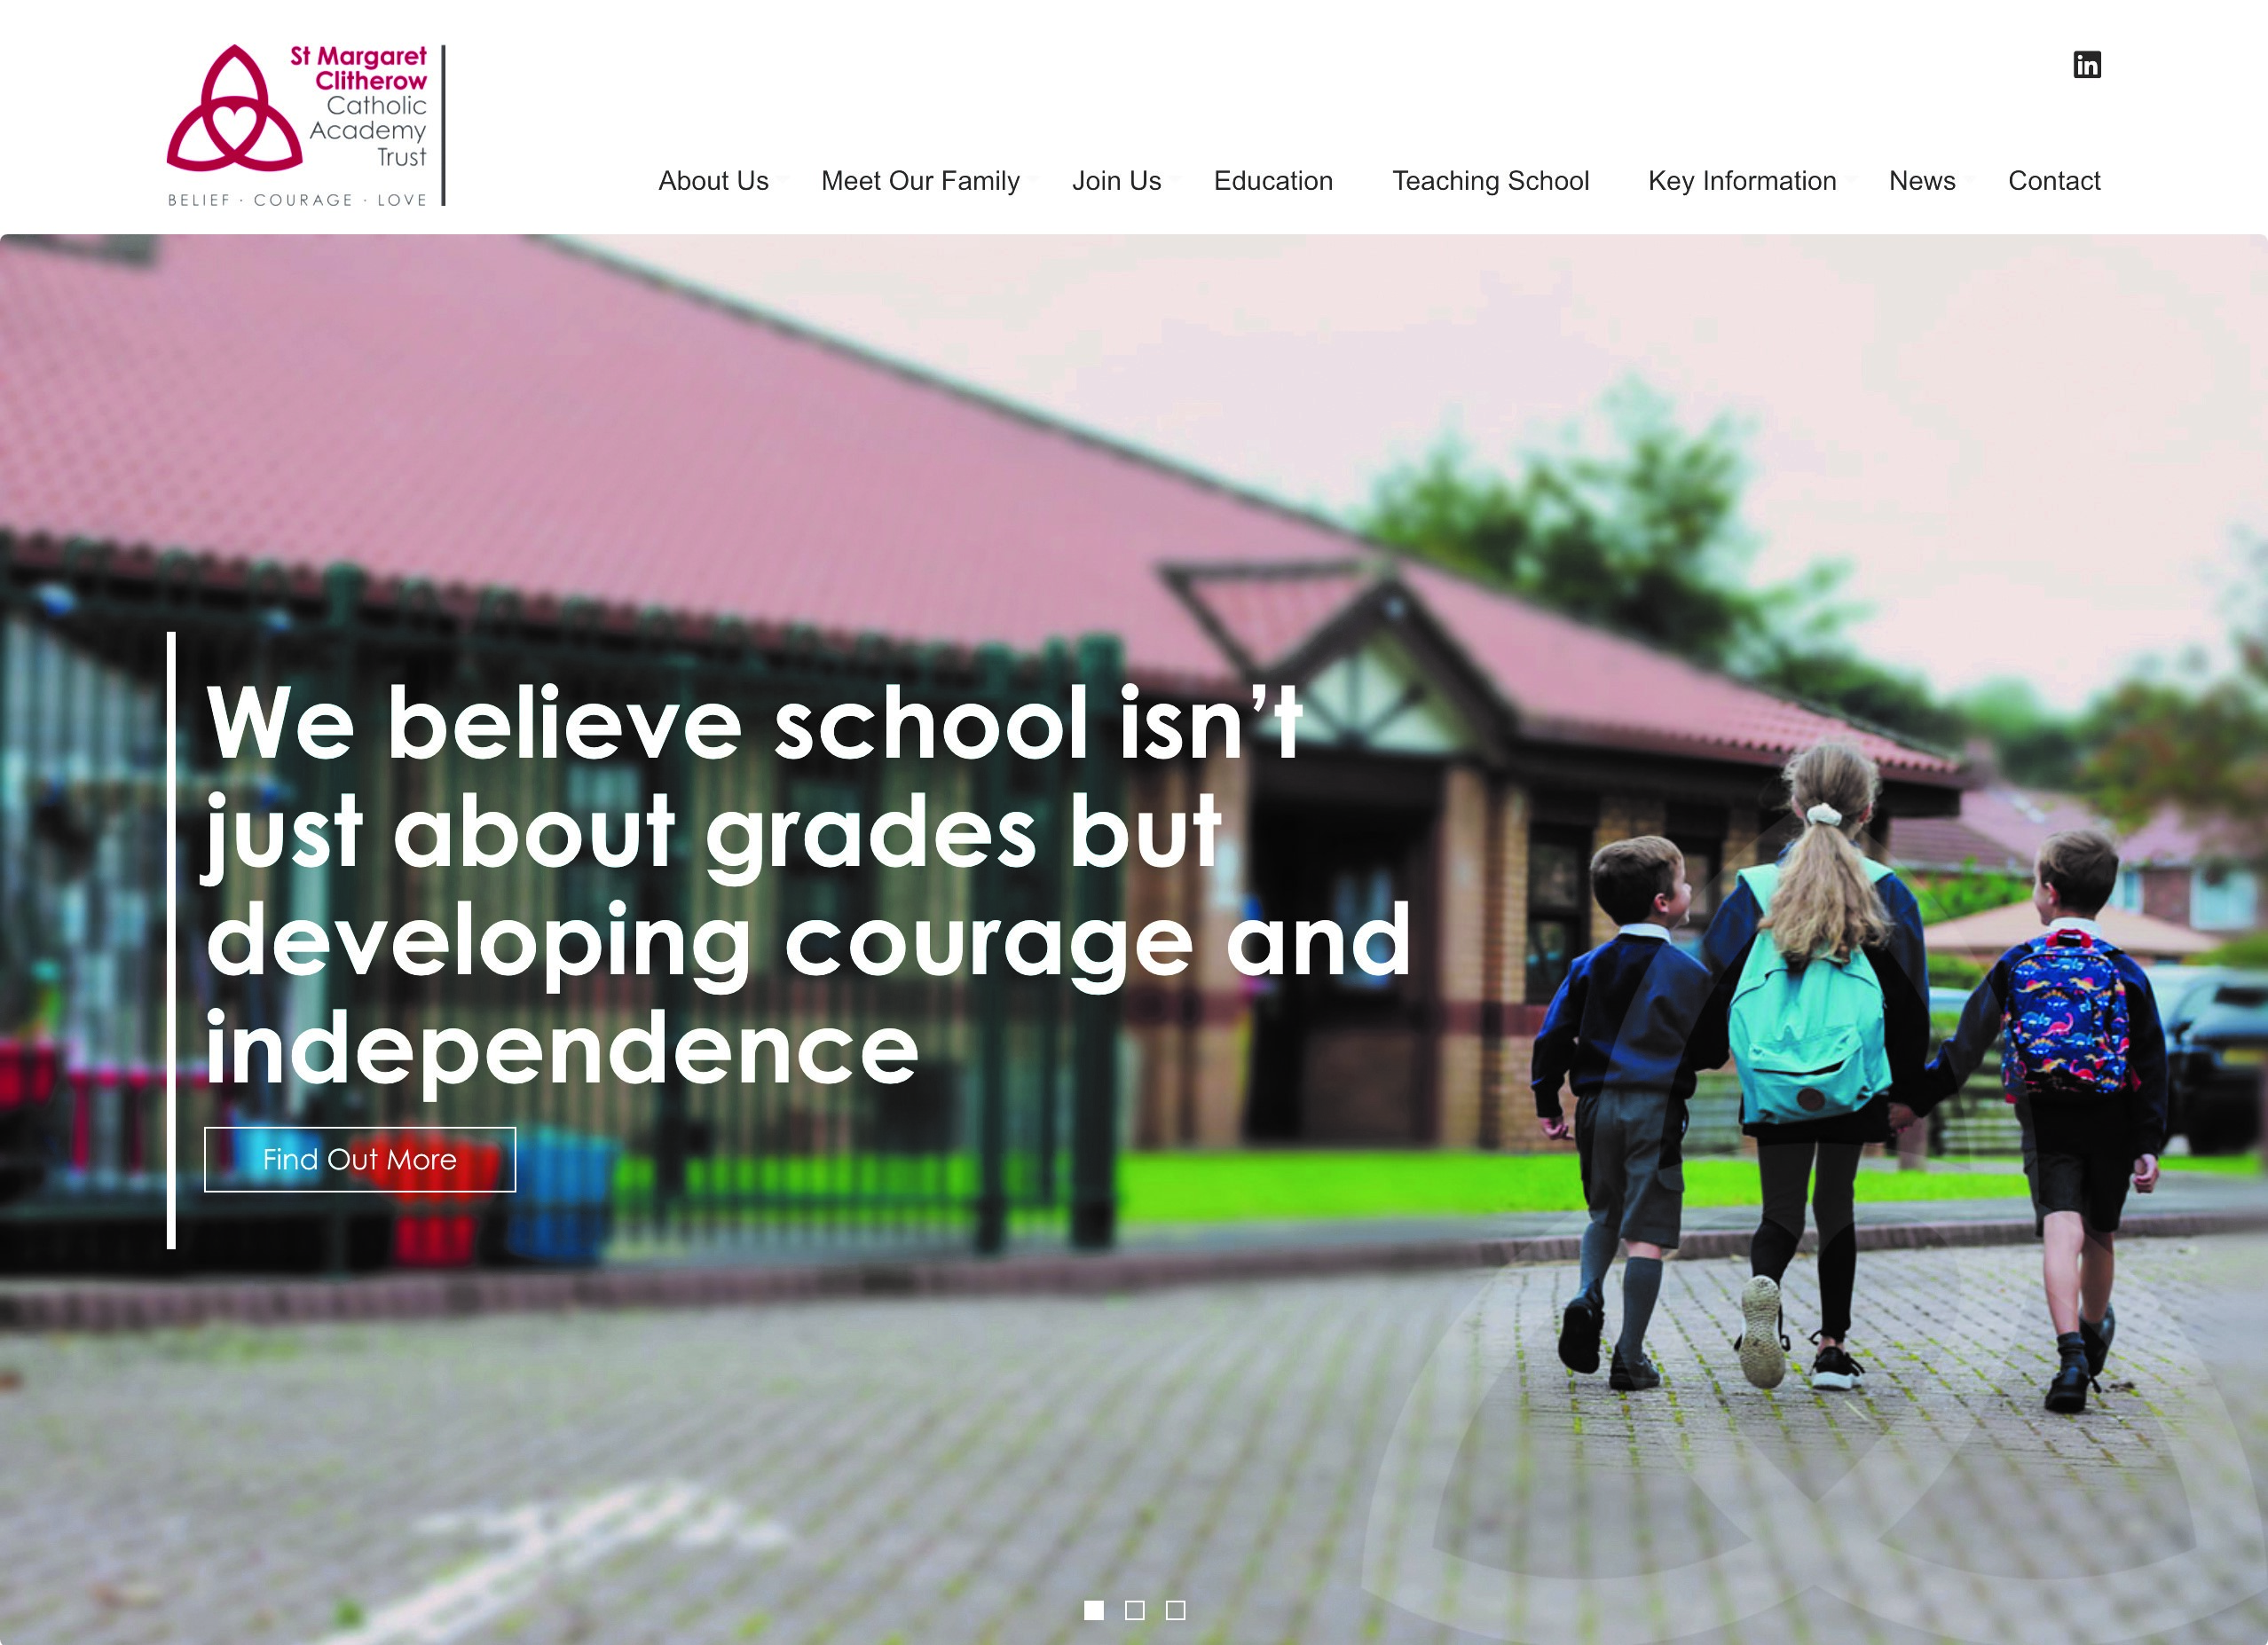 St Margaret Clitherow Catholic Academy Trust's new website